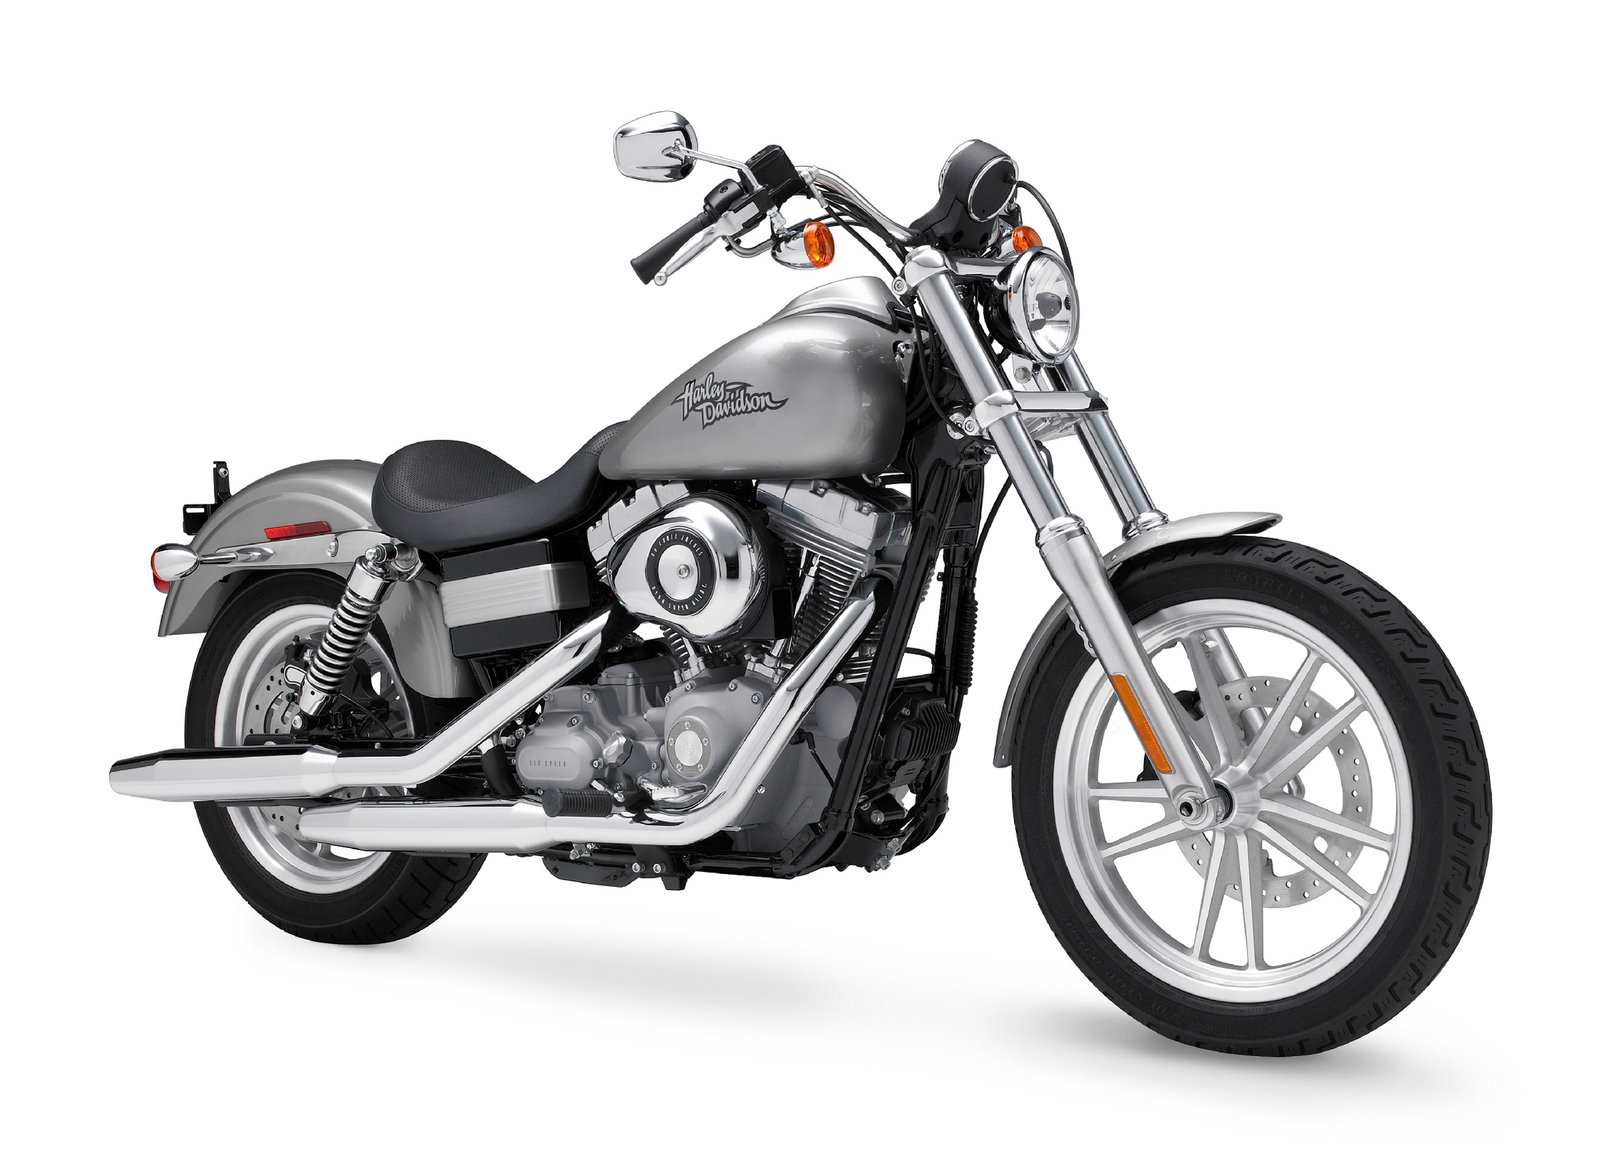 2009 Harley Davidson Fxd Dyna Super Glide Custom Review